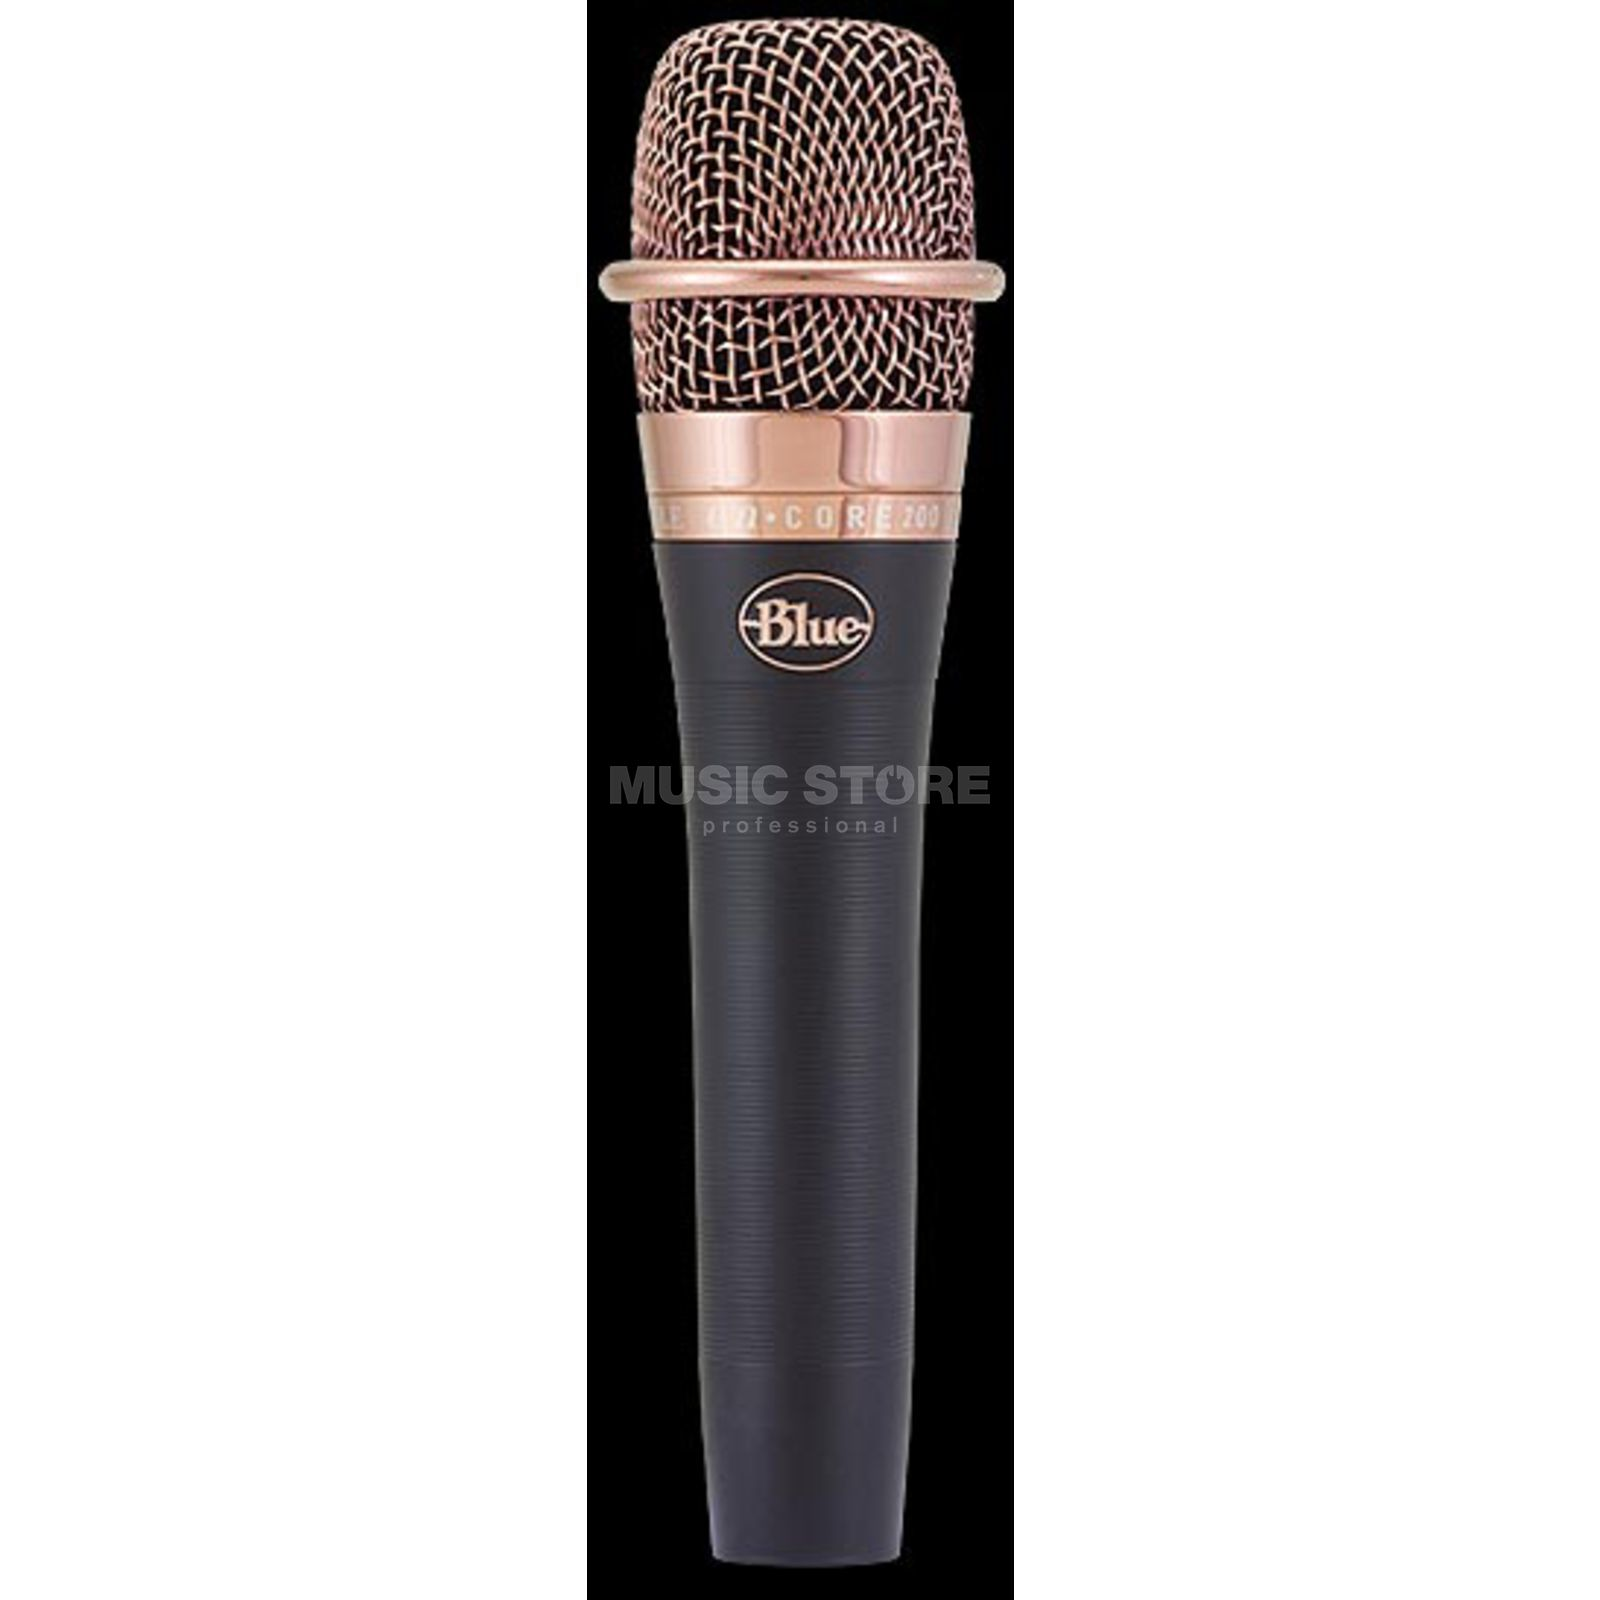 Blue Microphones enCORE 200 B-Ware PH Powered Dynamic Microphone Produktbild